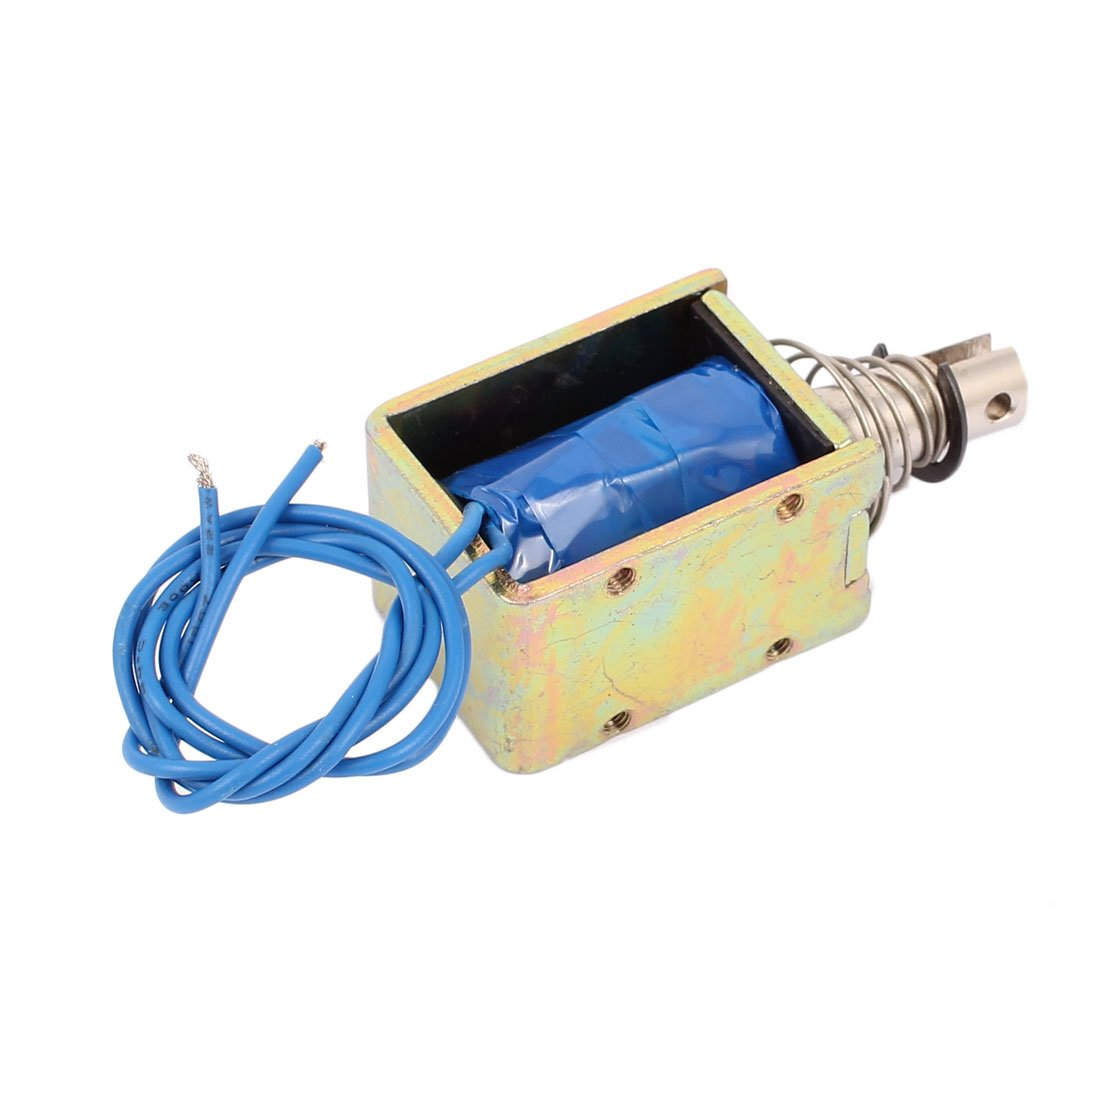 uxcell TAU-1040 DC 12V 1A 25N Push Pull Type Open Frame Solenoid Electromagnet Magnet